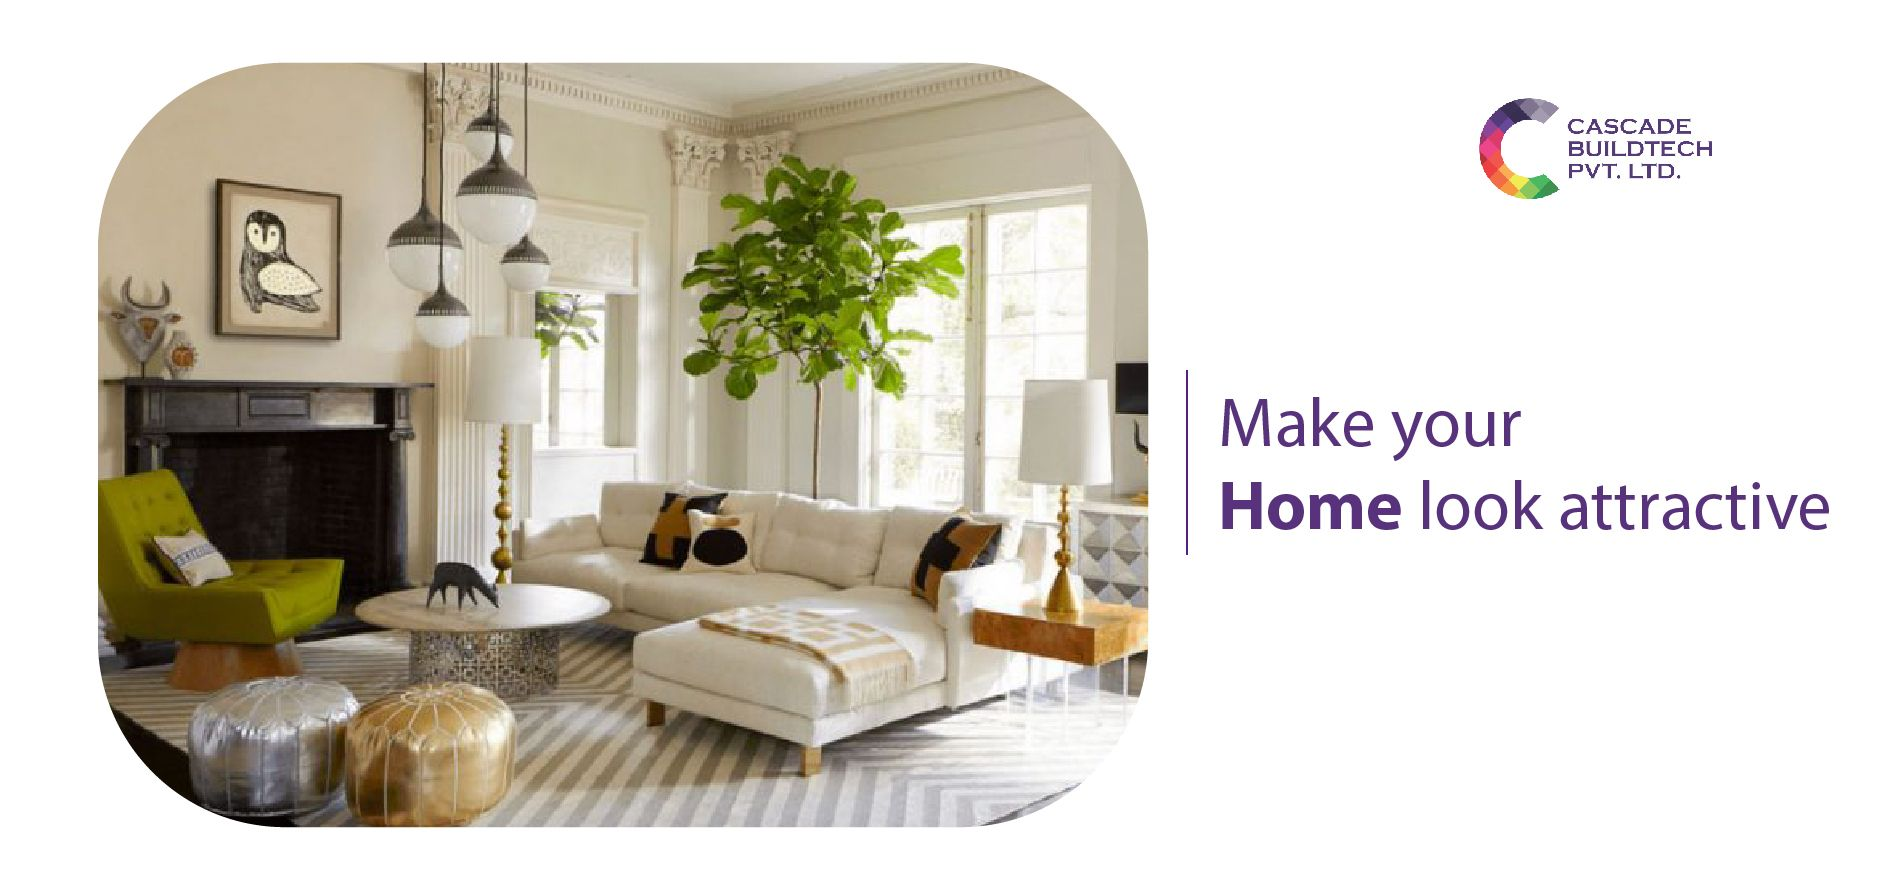 Make-your-home-look-attractive